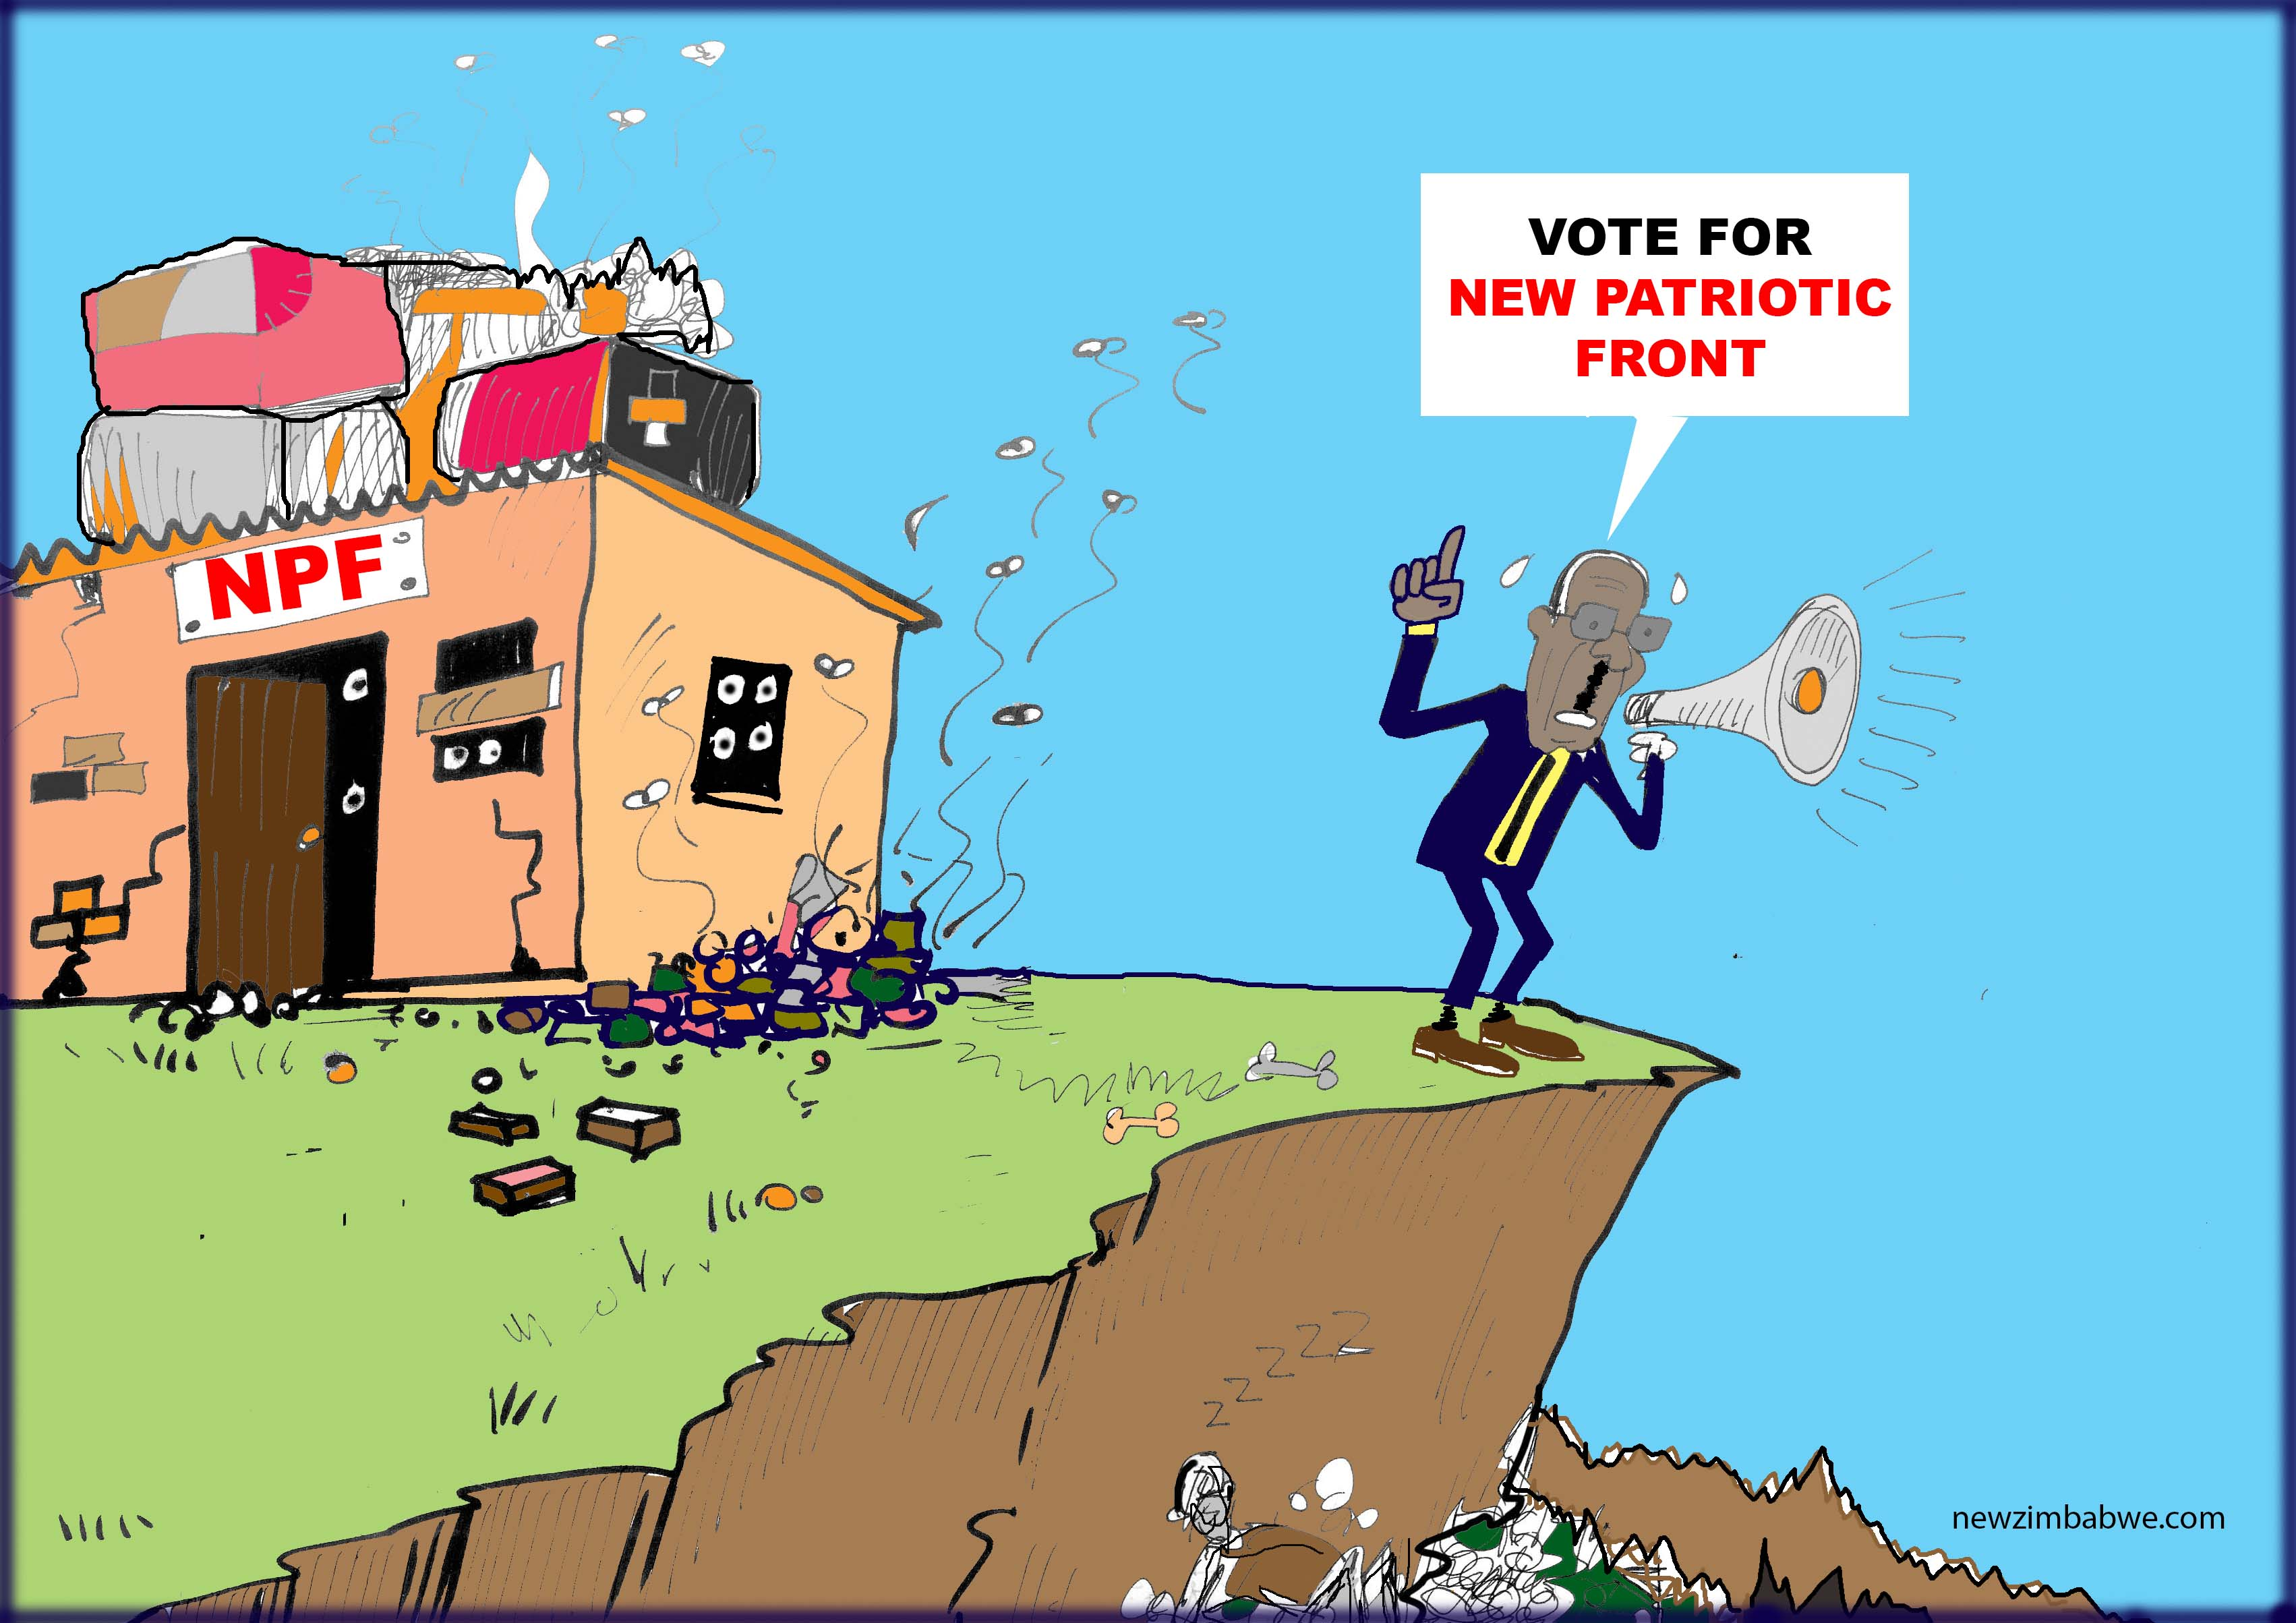 VOTE FOR NEW PATRIOTIC FRONT